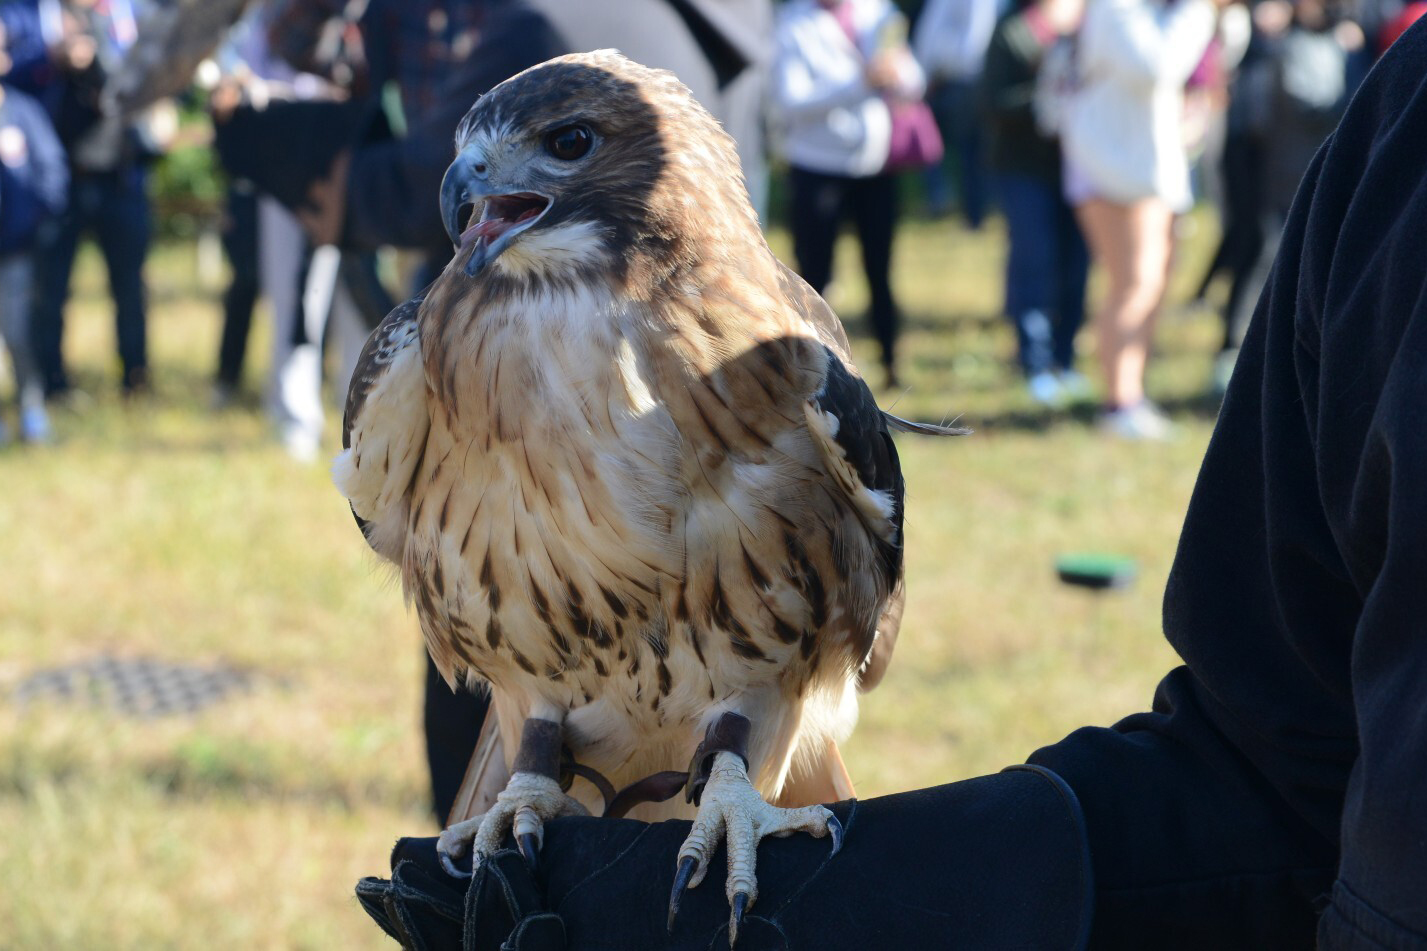 A red-tailed hawk greets crowds at bird festival Raptorama at the Jamaica Bay Wildlife Refuge, Oct. 17, 2021.